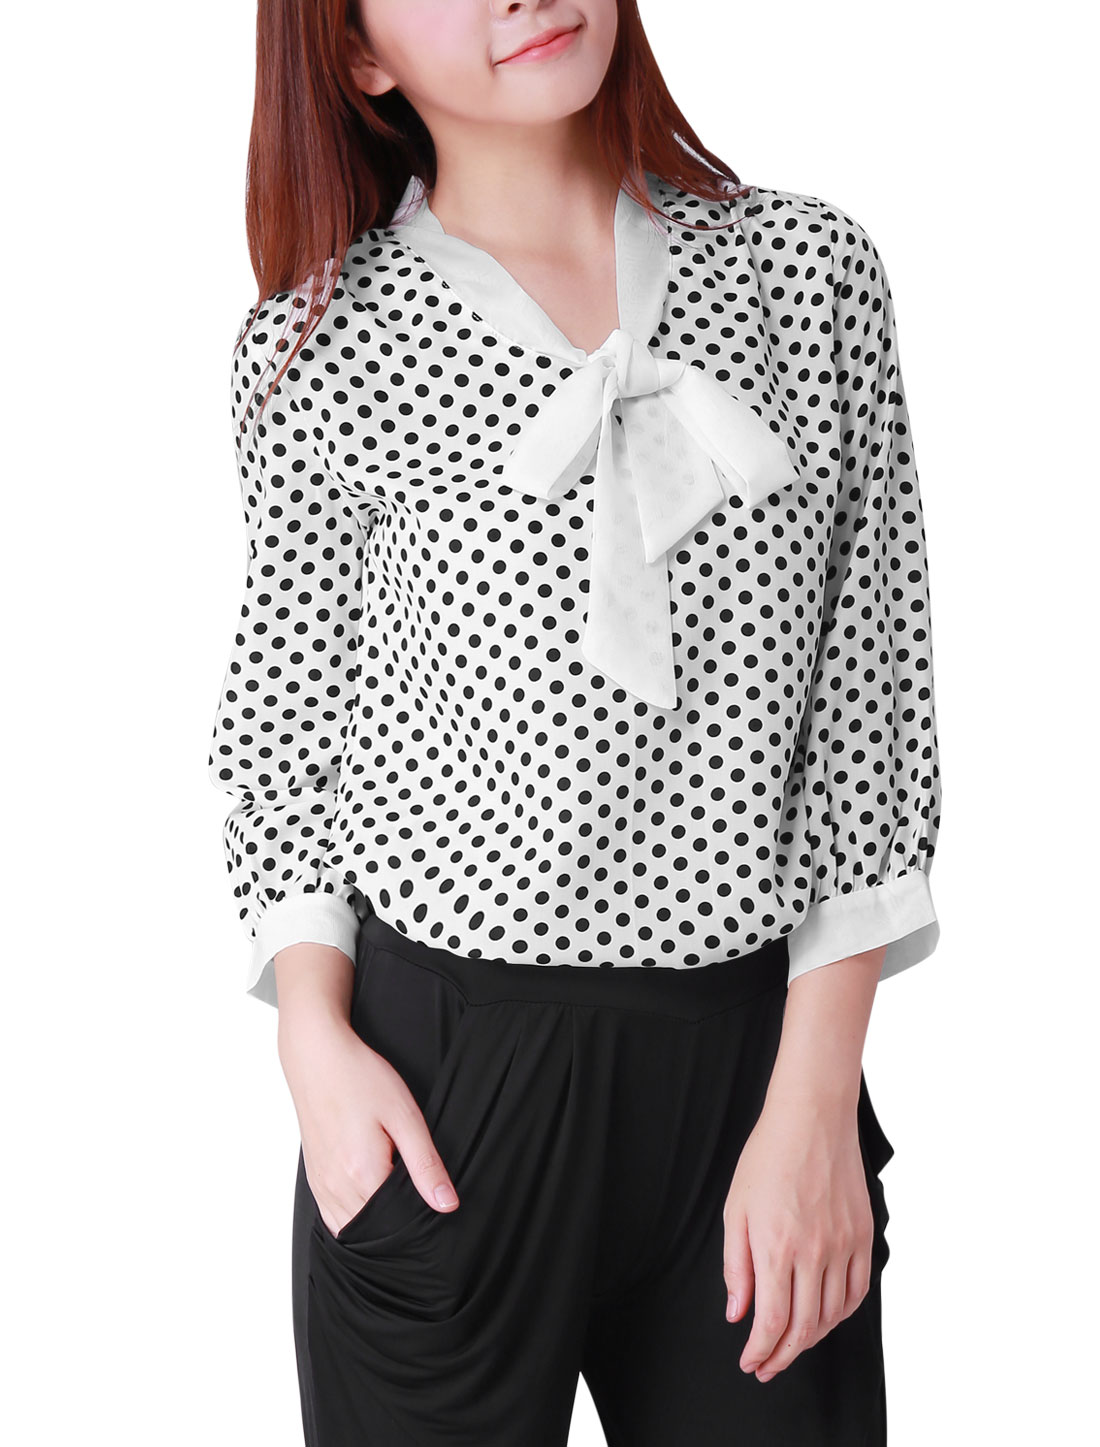 Stylish Women Polka-Dots Printed White Casual Top Blouse L